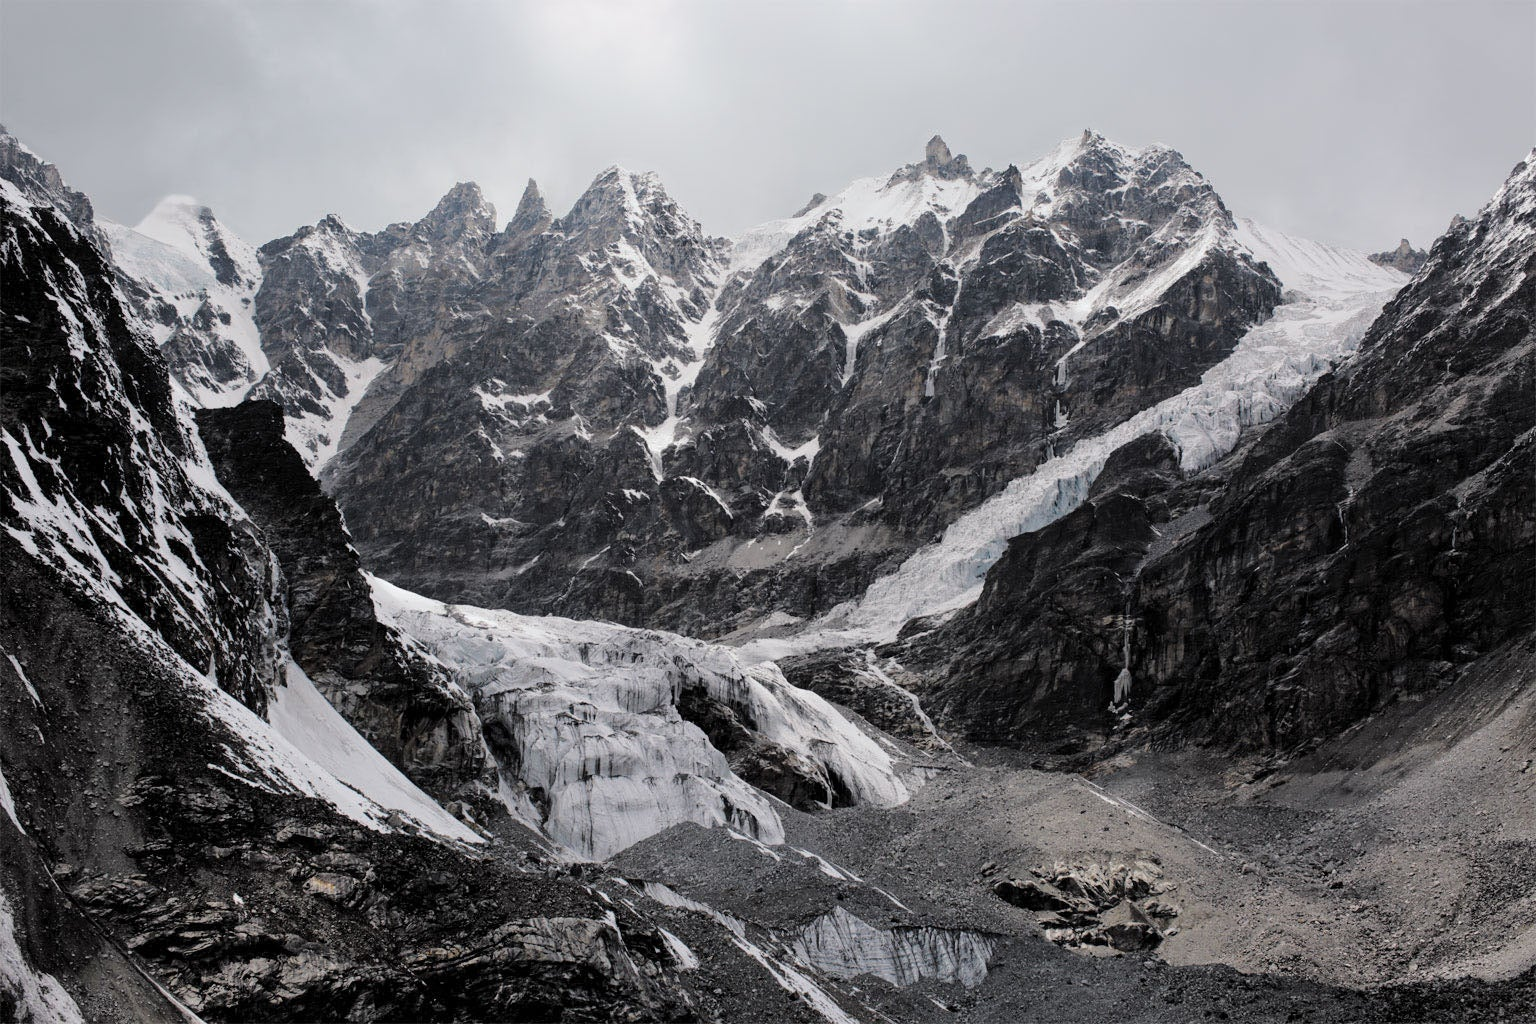 Mountain Water Supply to Two Billion People Could Change